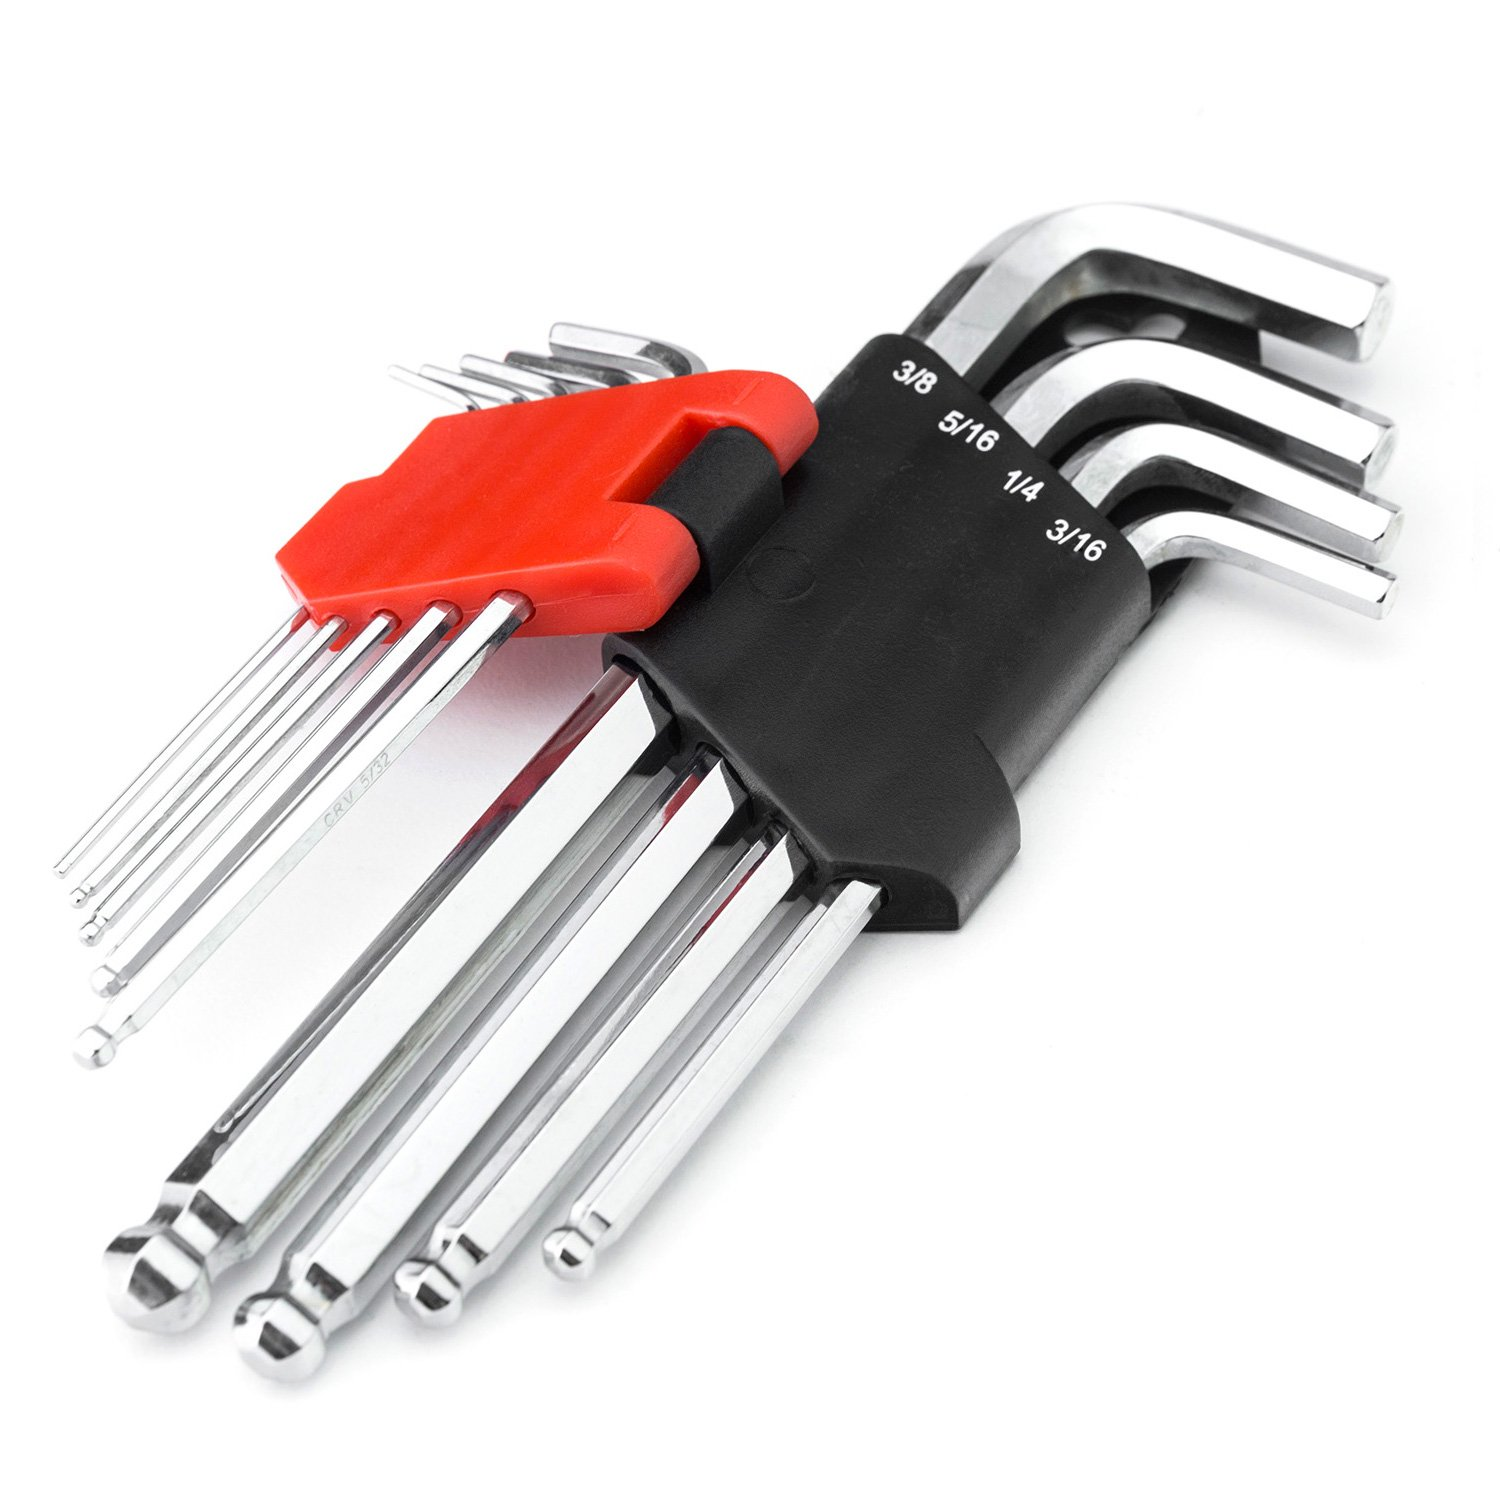 MAXPOWER 9-Piece SAE Ball Hex Key Set Pro Grade Large Allen Wrenches in Inches